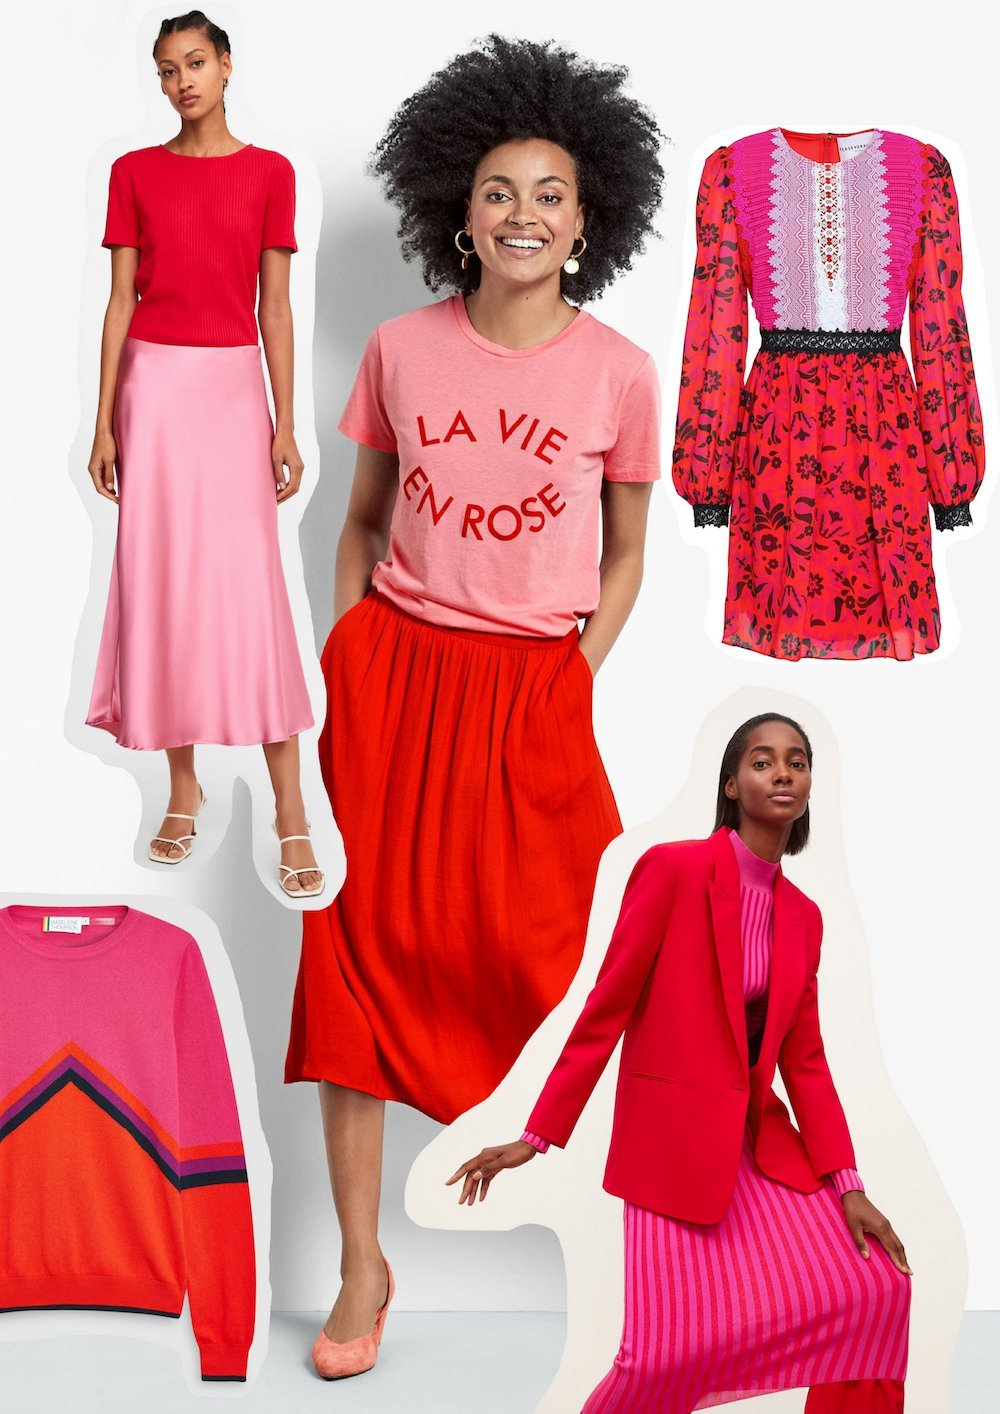 women wearing fashionable red and pink clothes